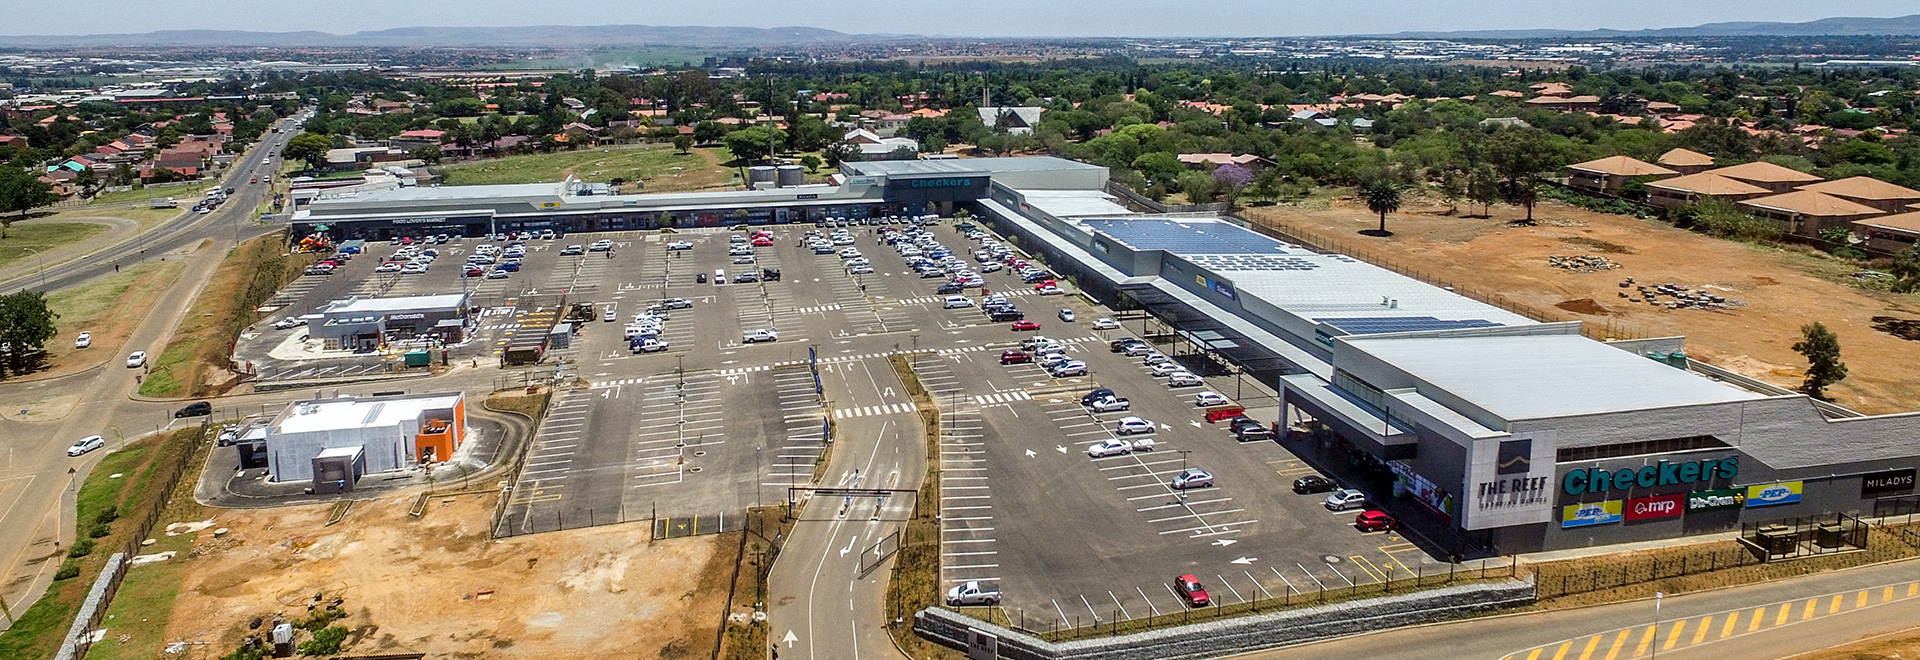 The Reef Shopping Centre